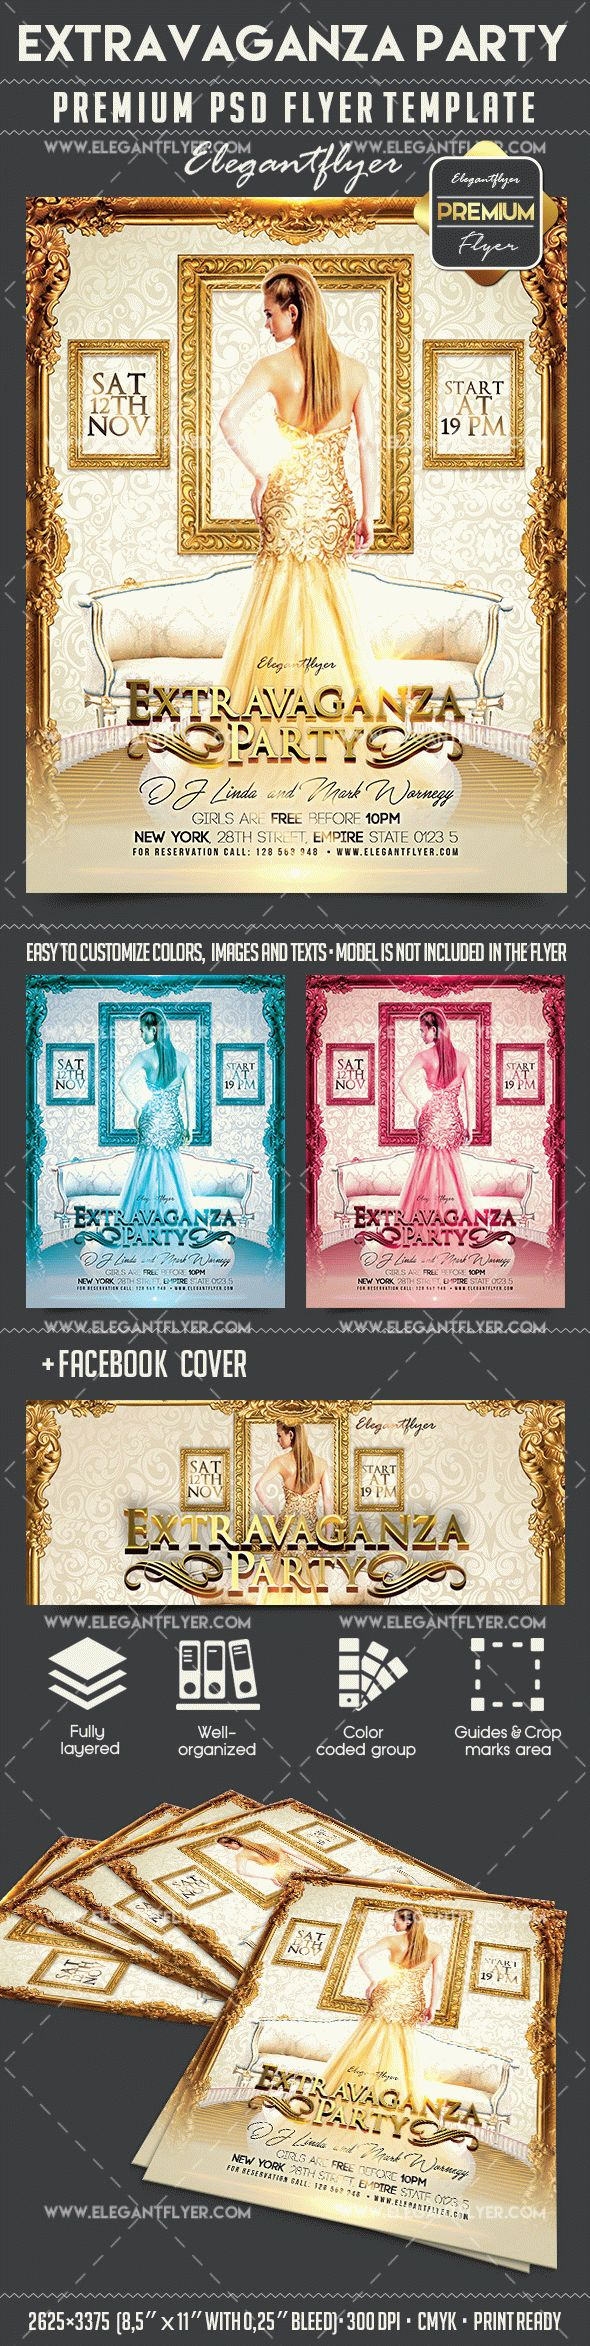 Extravaganza Party – Flyer PSD Template + Facebook Cover